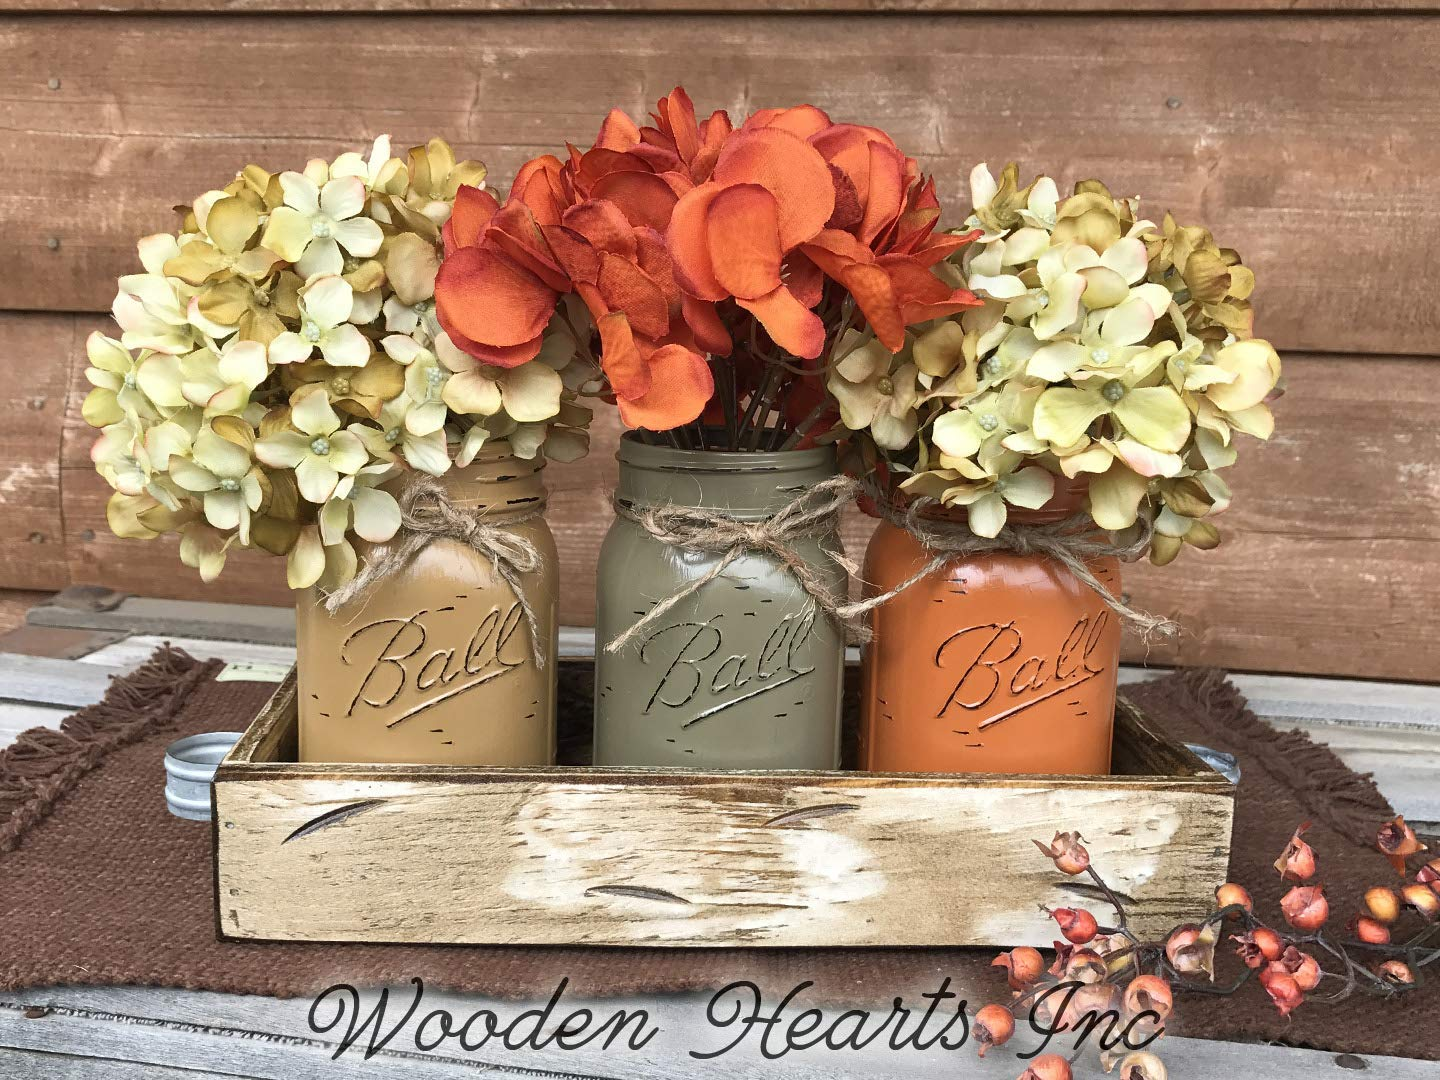 FALL Mason Canning JARS in Wood Antique White Tray Centerpiece with 3 Ball Pint Jar - Kitchen Table Decor - Distressed Rustic - Flowers (Optional) - Painted Jars Orange Mustard Brown Tan Green Yellow by Wooden Hearts